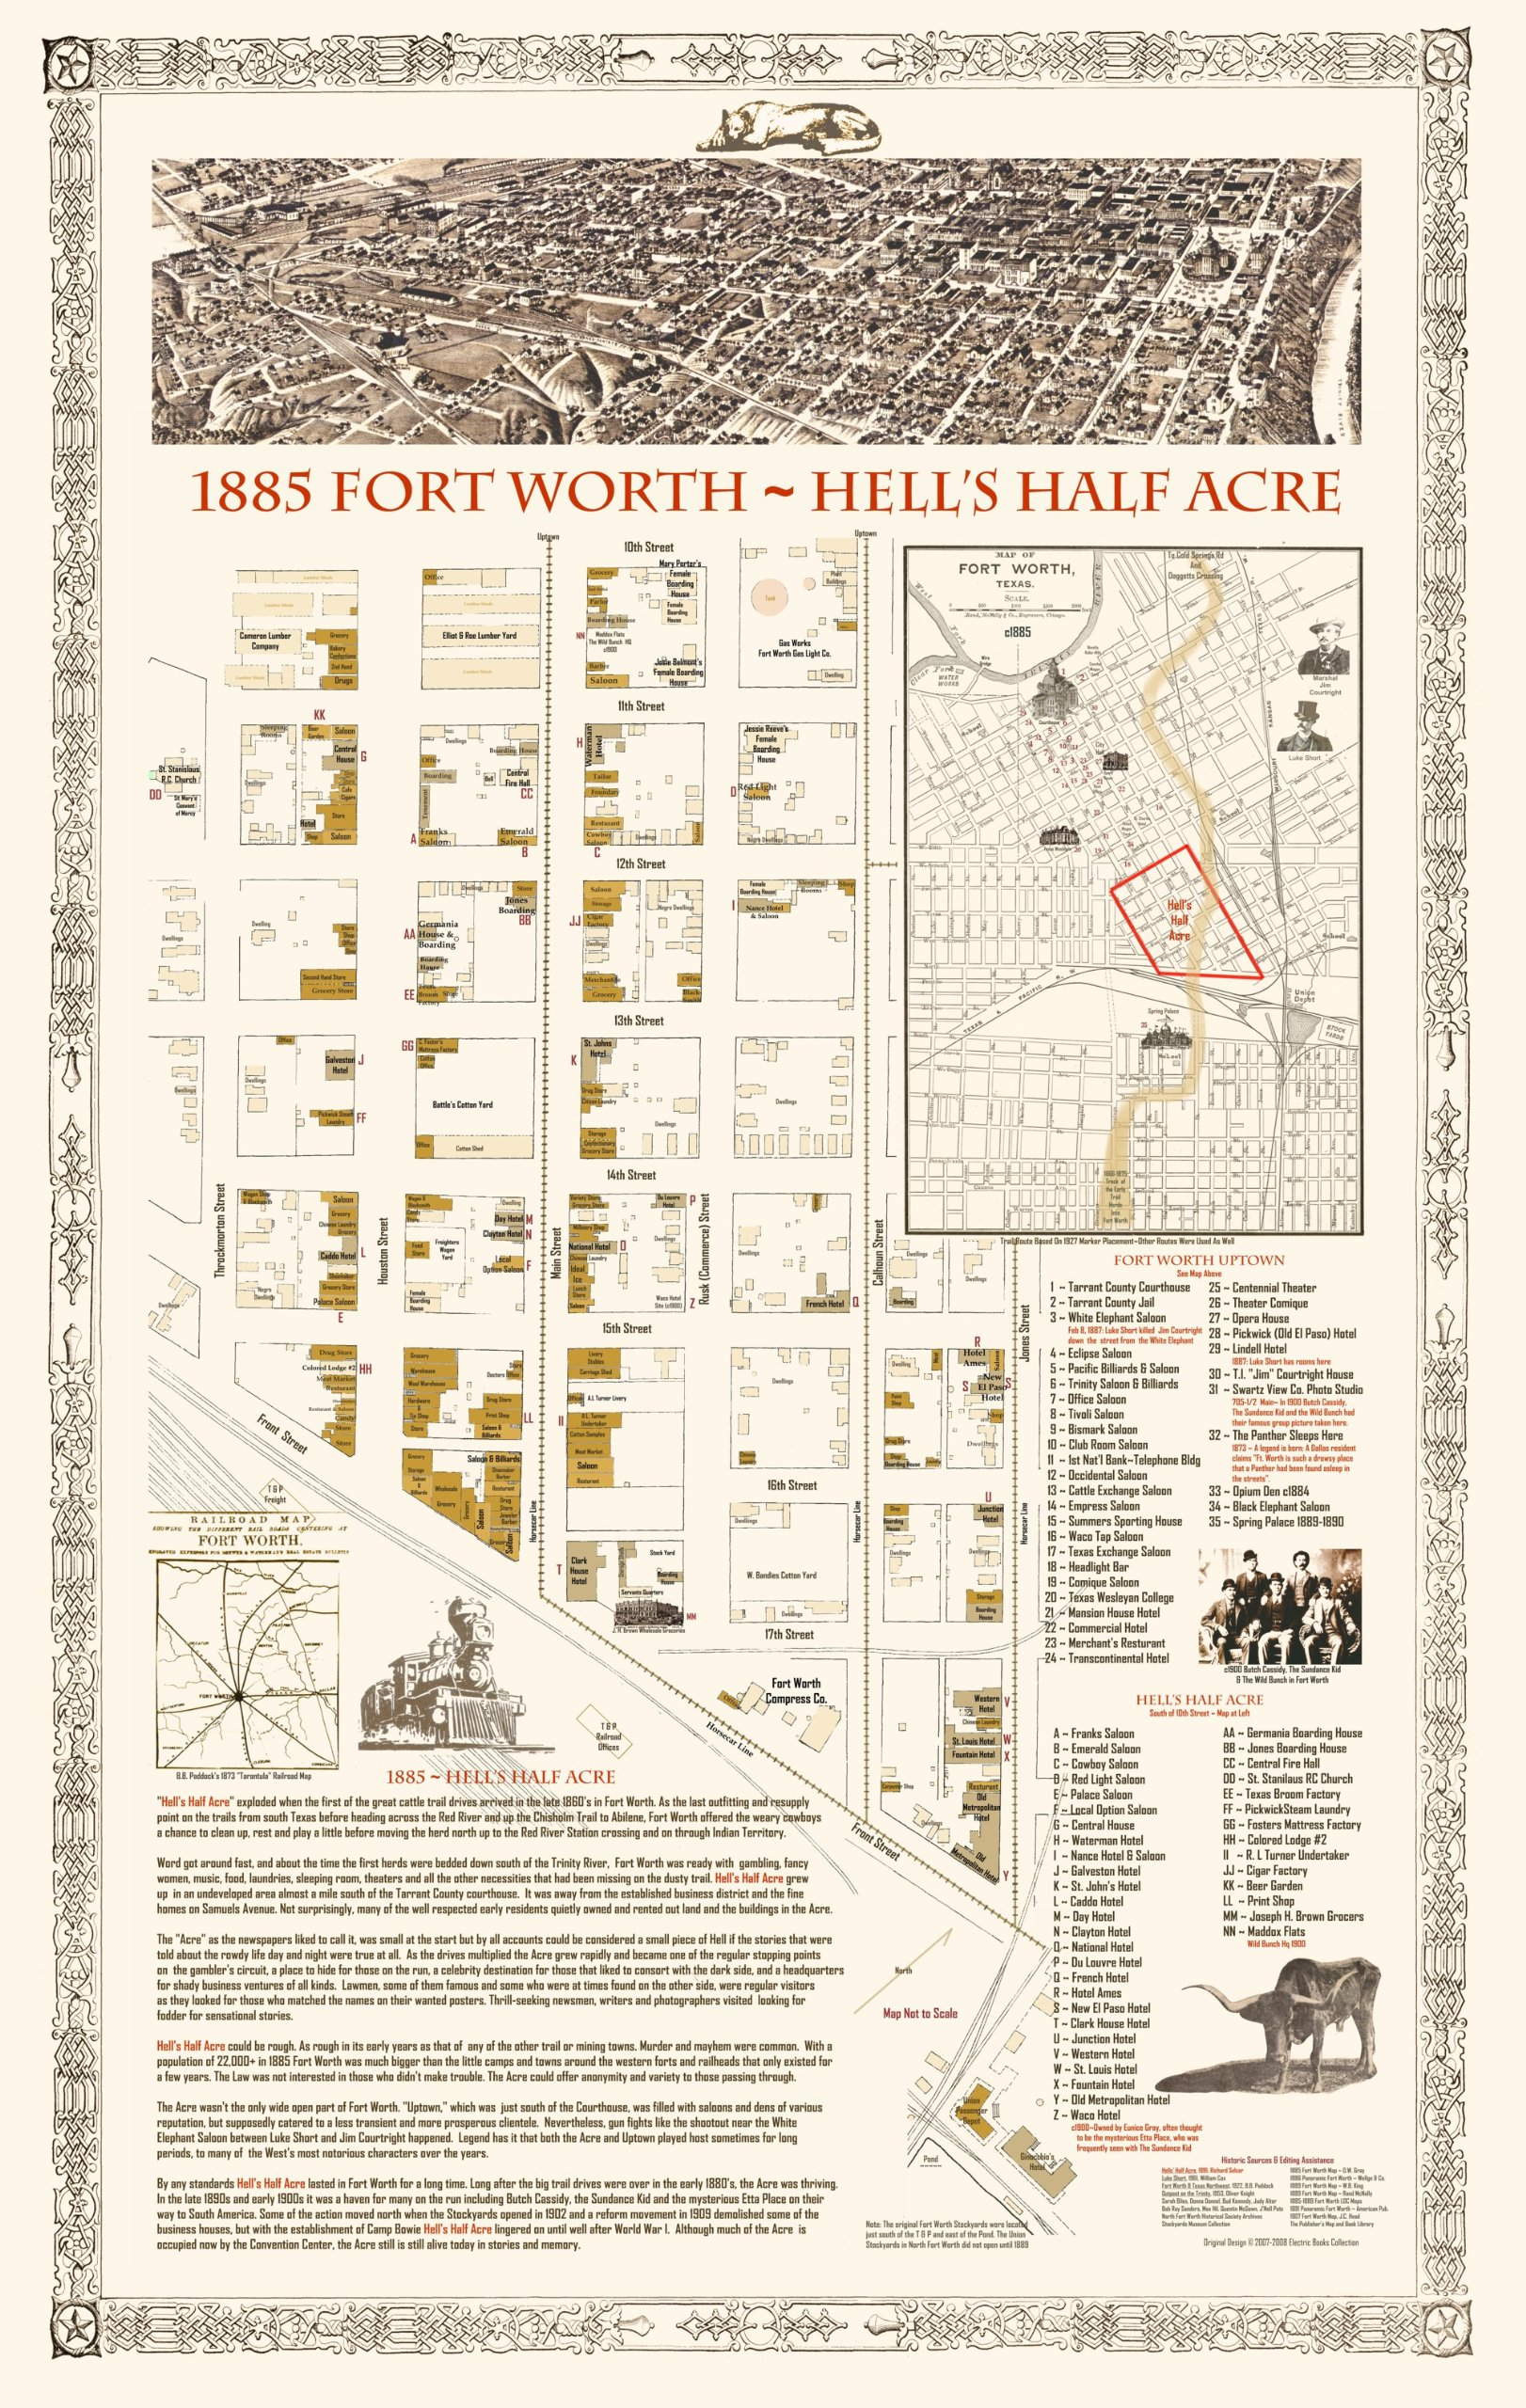 1885 Fort WorthHELLs HALF ACRETX Trail MapOriginal 24x18 Texas